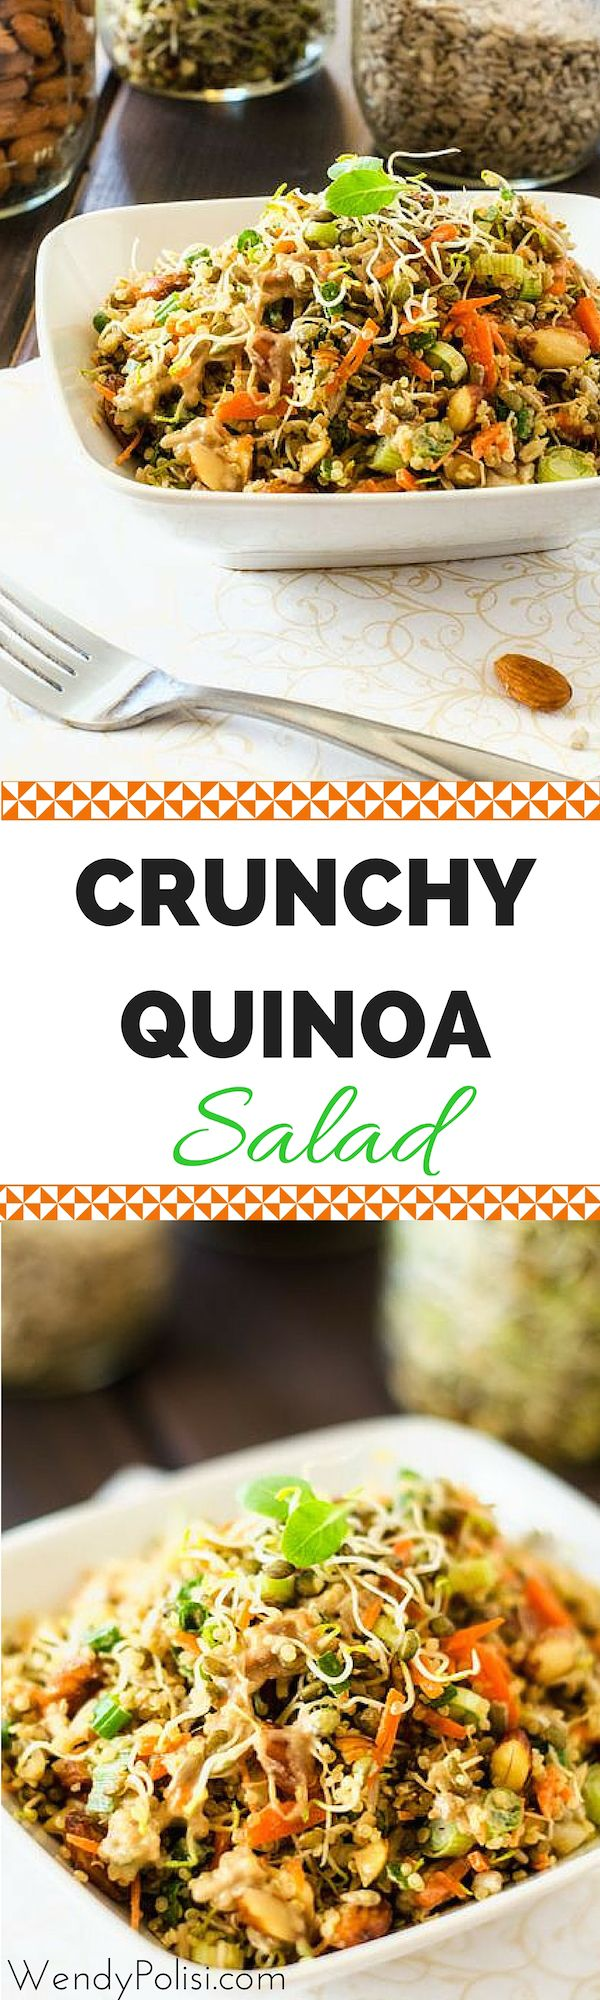 Crunchy Quinoa Salad with yummy almonds and sunflower seeds -- also fantastic in a wrap for a quick supper or breakfast on the go.